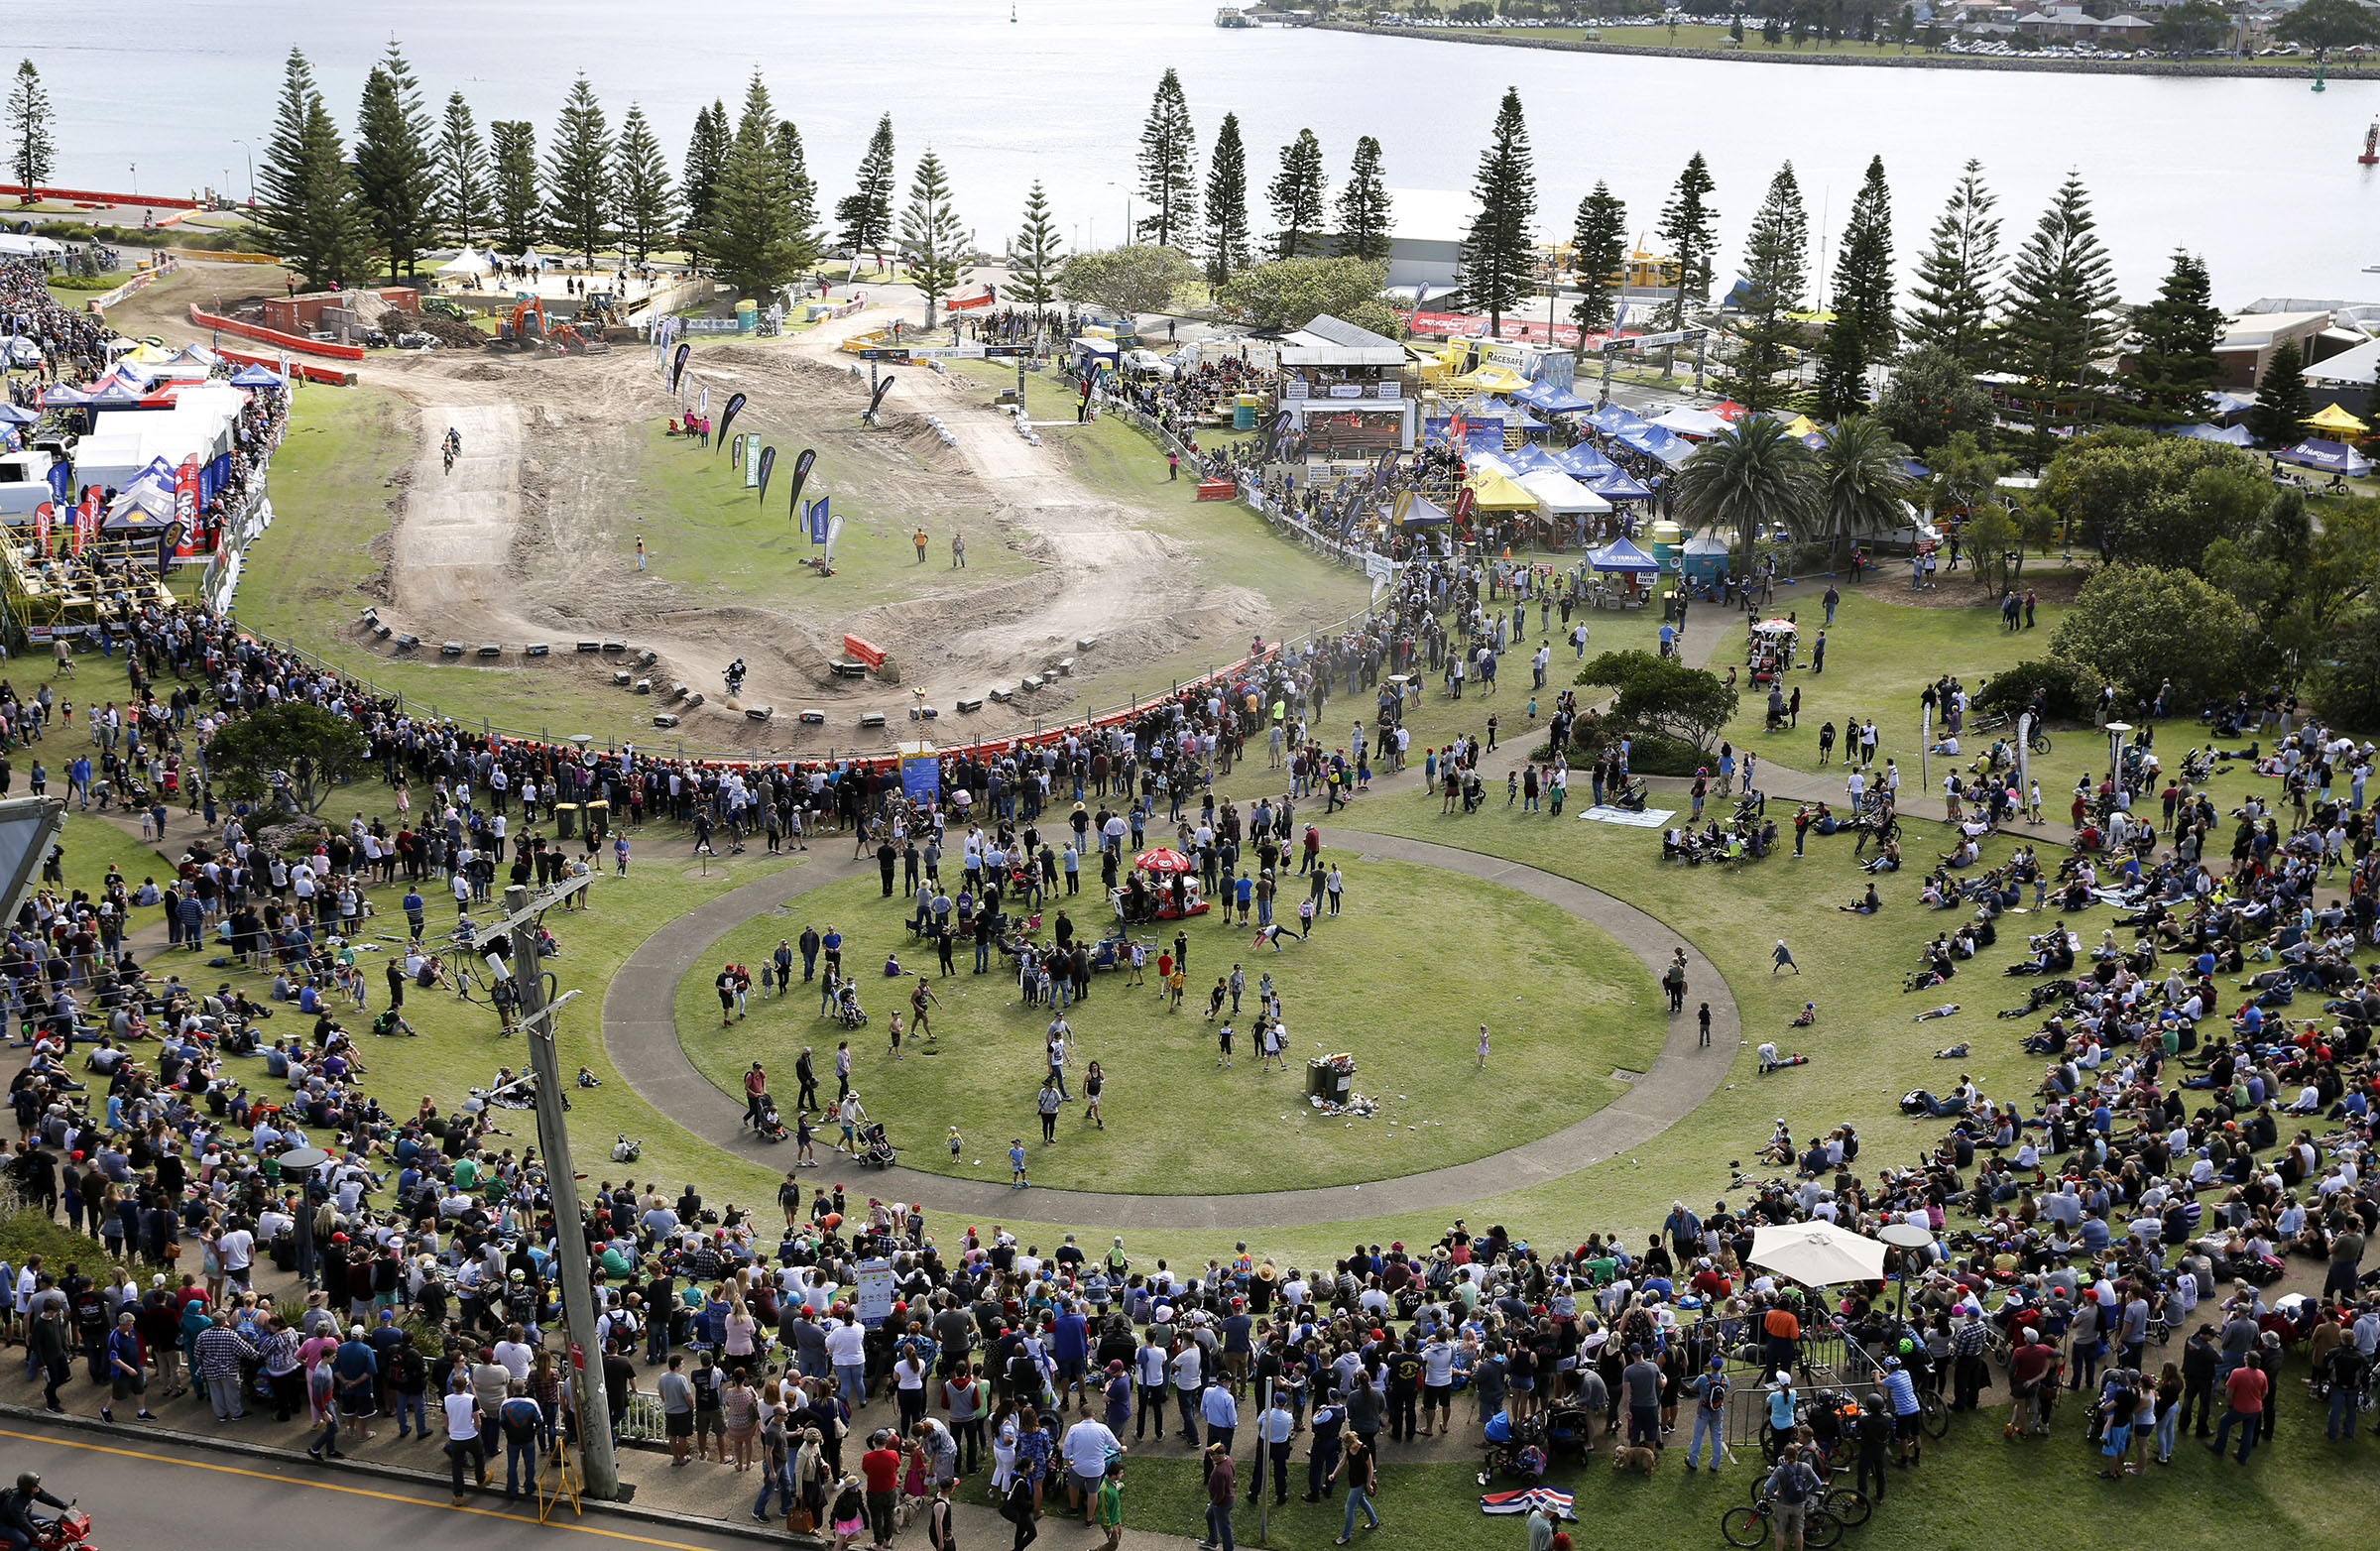 Plenty of moto fans turned up for the weekend of racing